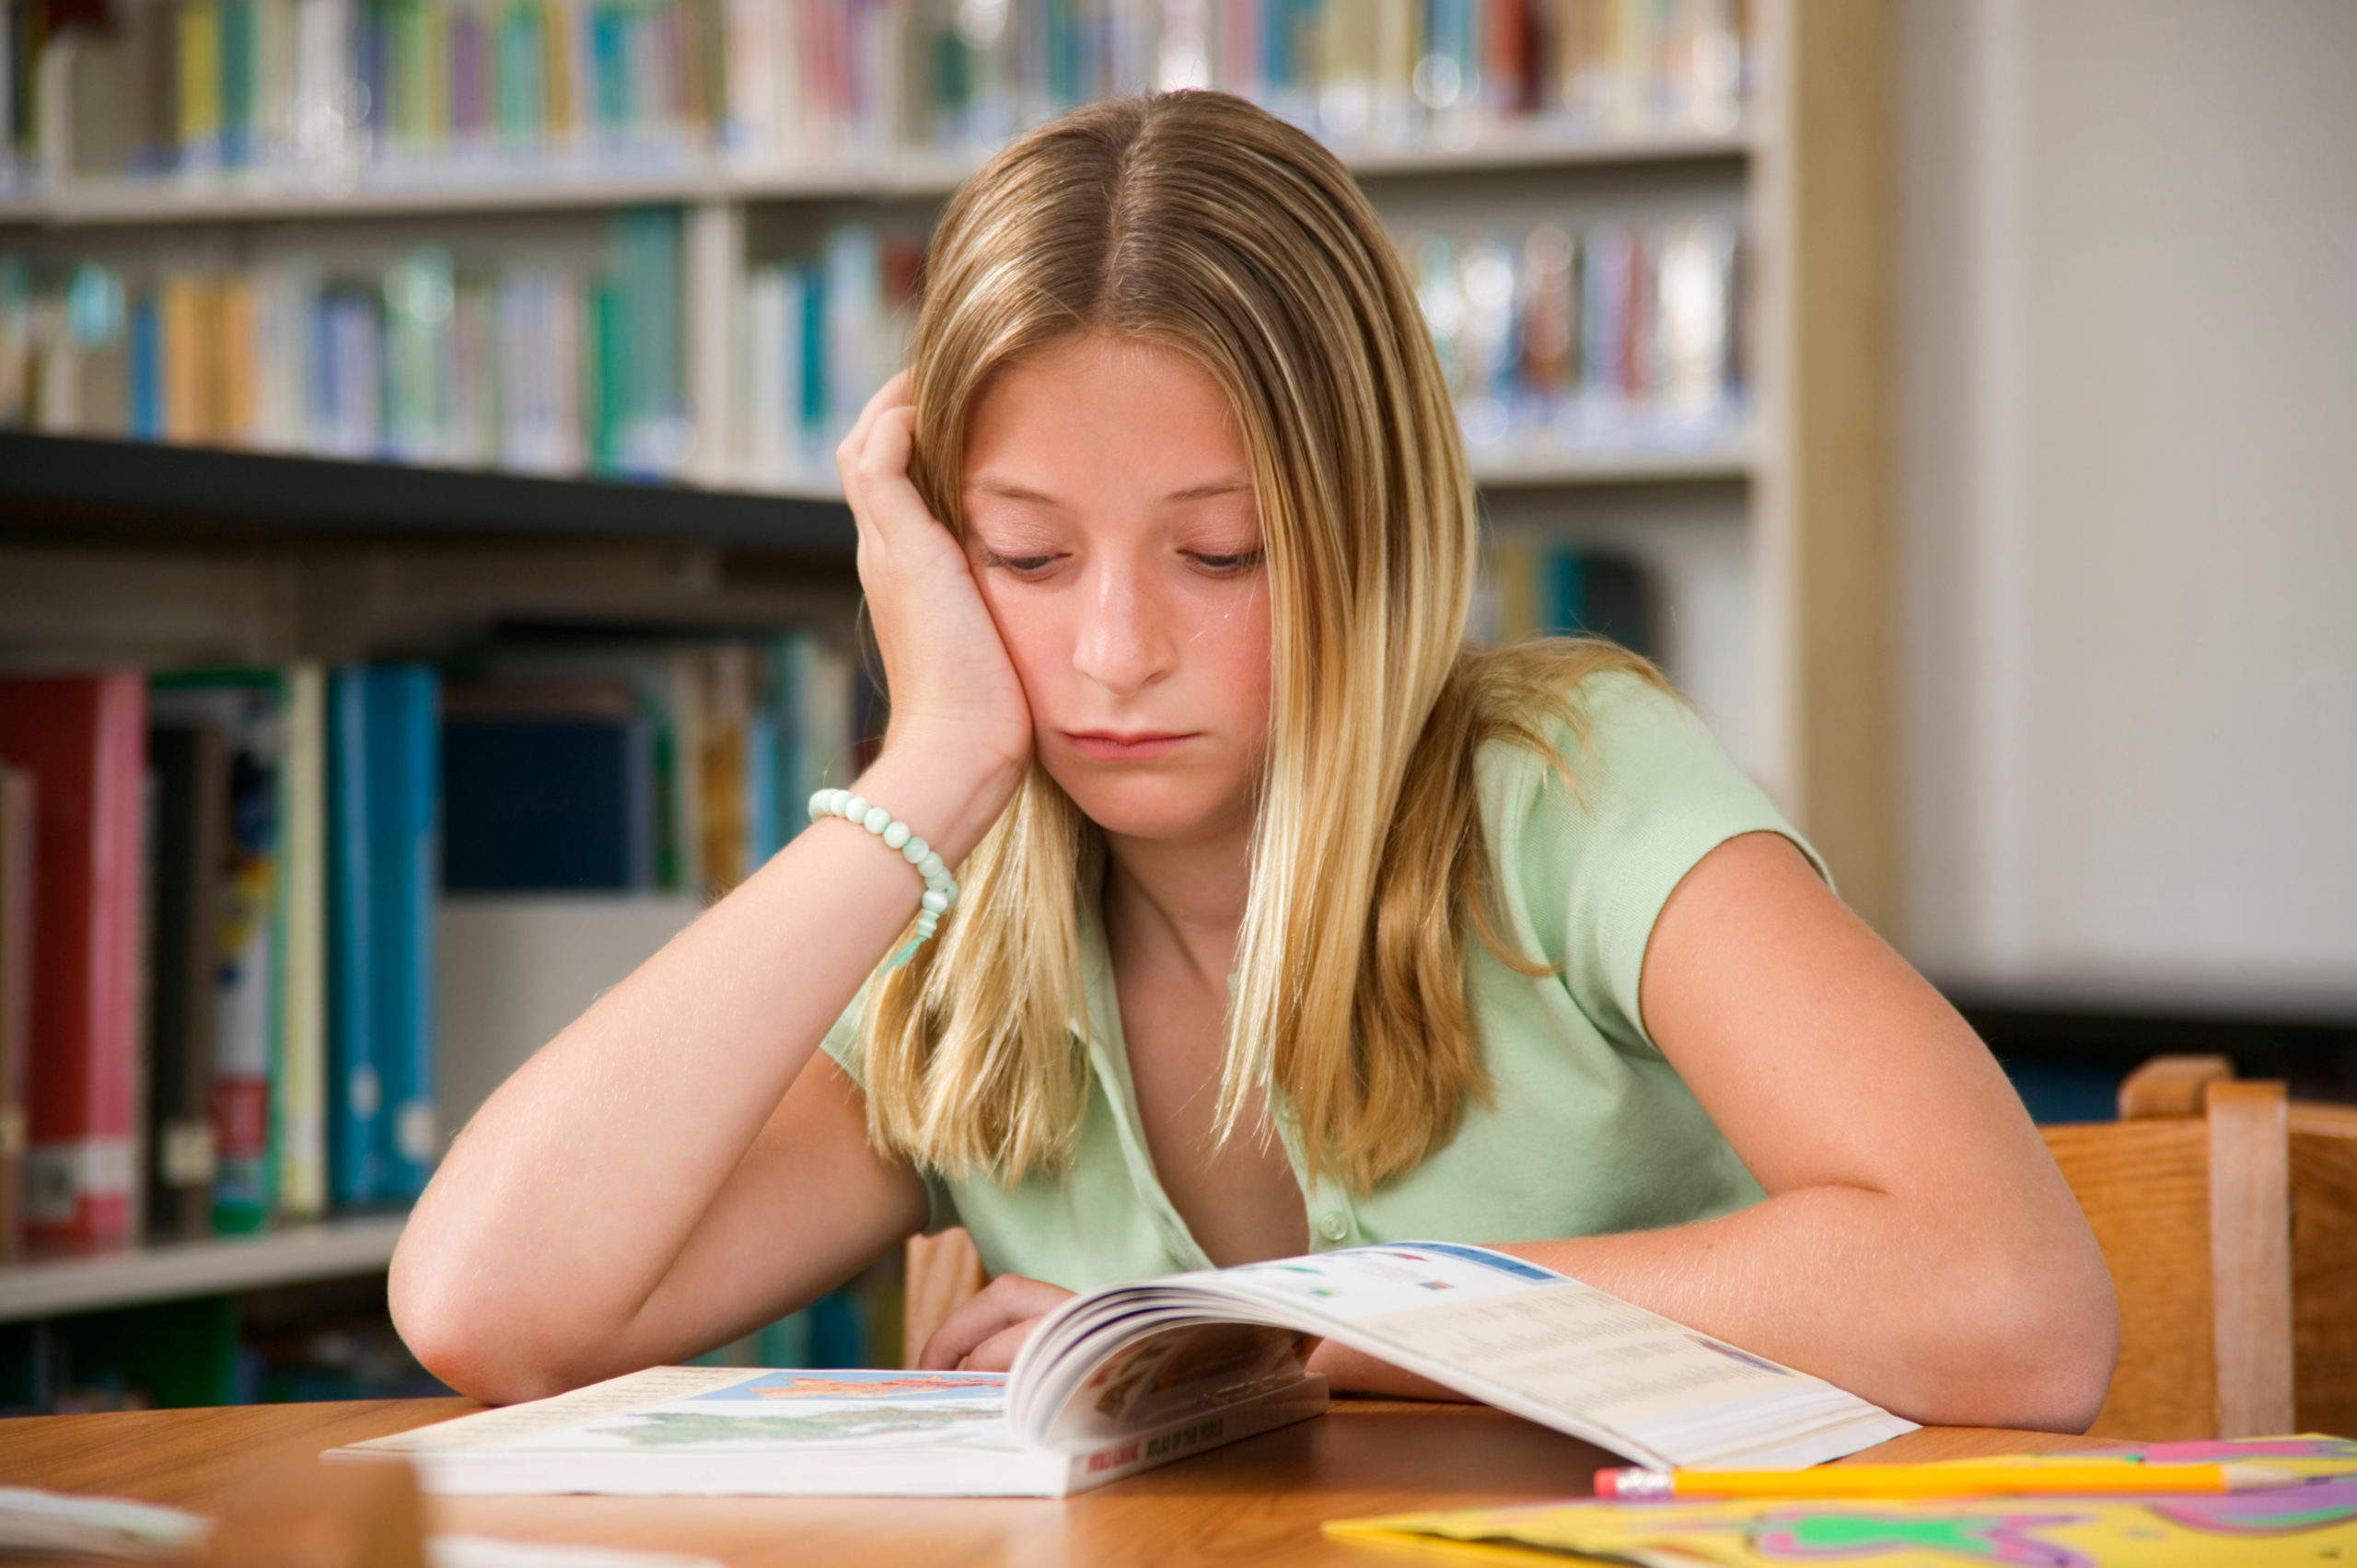 Student Reading Comprehension l How To Improve Student Reading Comprehension l Reading Comprehension Strategies for all students l Reading Comprehension Articles for high school